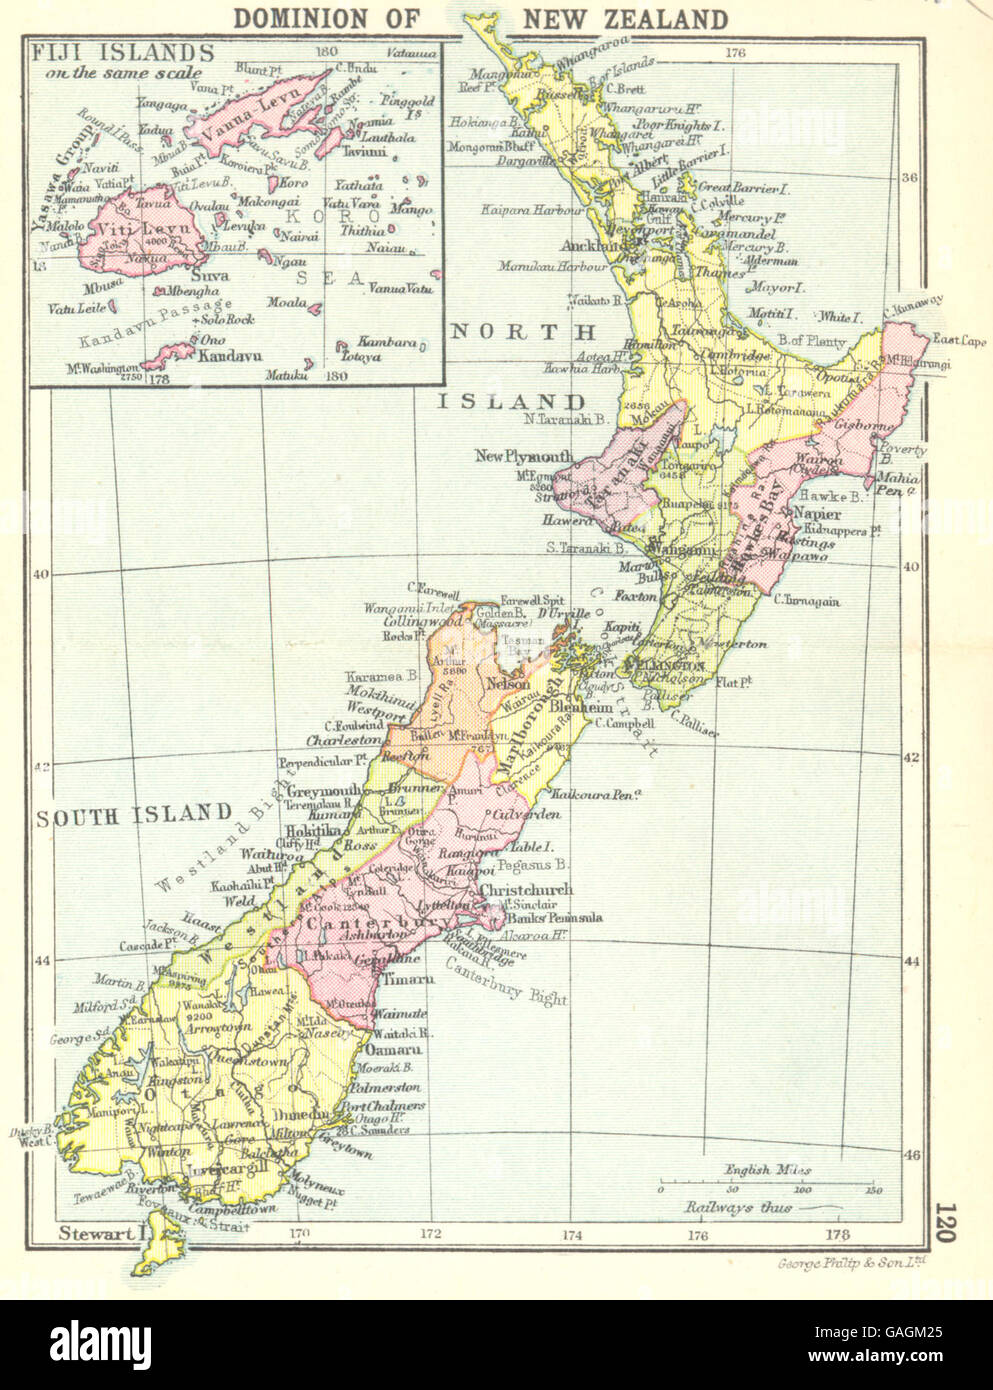 New zealand dominion of inset map fiji islands small map 1912 new zealand dominion of inset map fiji islands small map 1912 gumiabroncs Gallery